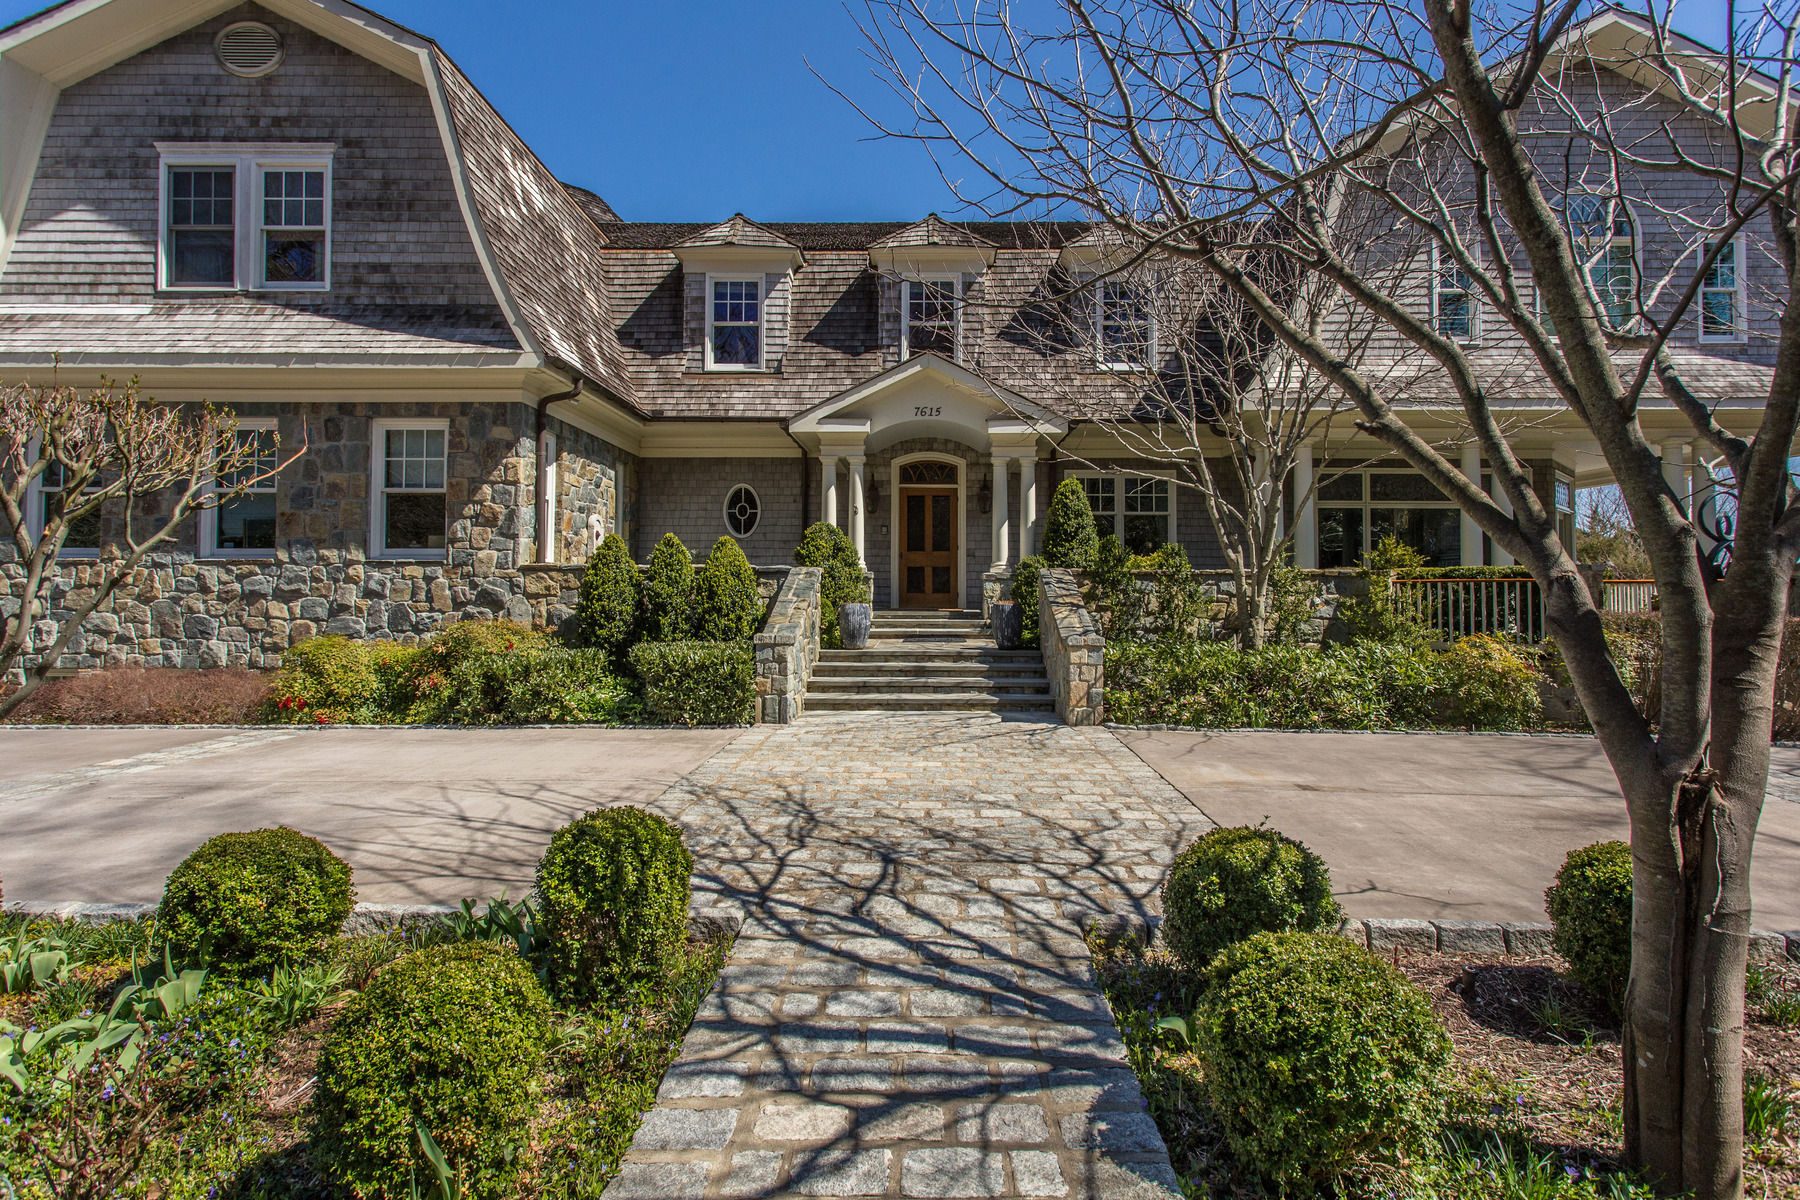 Single Family Home for Sale at Arcturus on the Potomac 7615 Southdown Rd Alexandria, Virginia 22308 United States